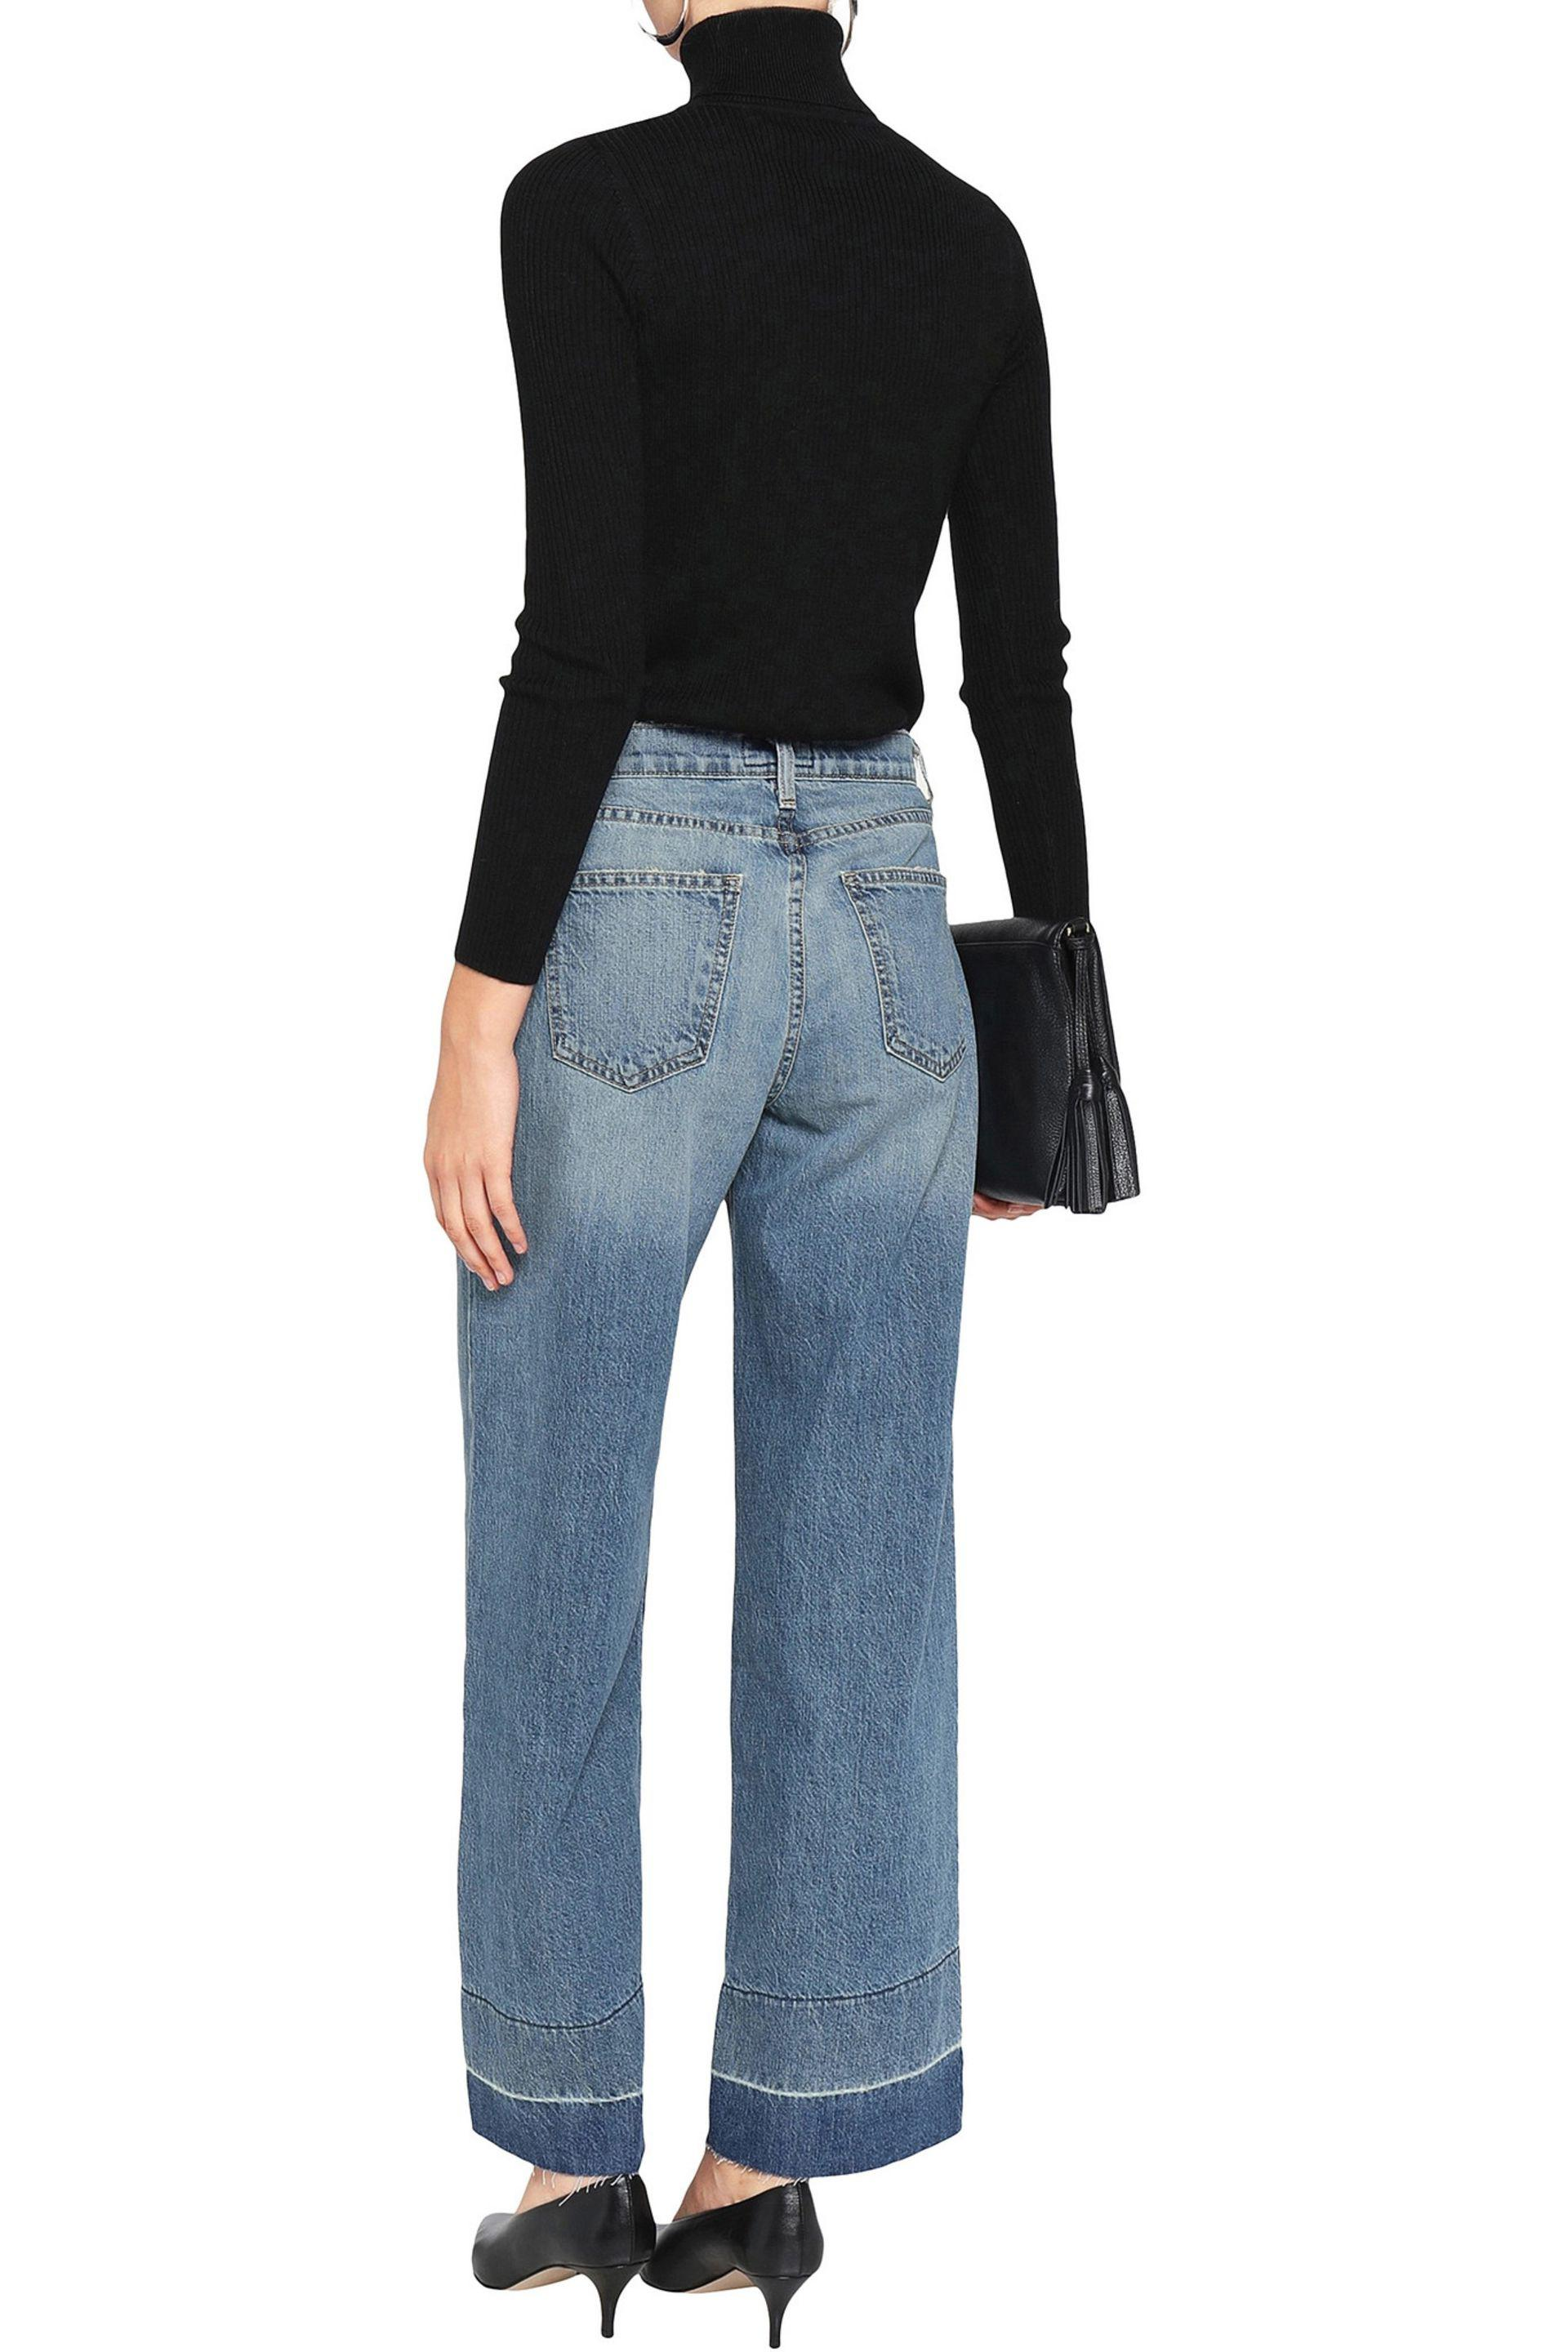 Current/Elliott The Wide Leg Frayed Jeans Mid Denim in Blue